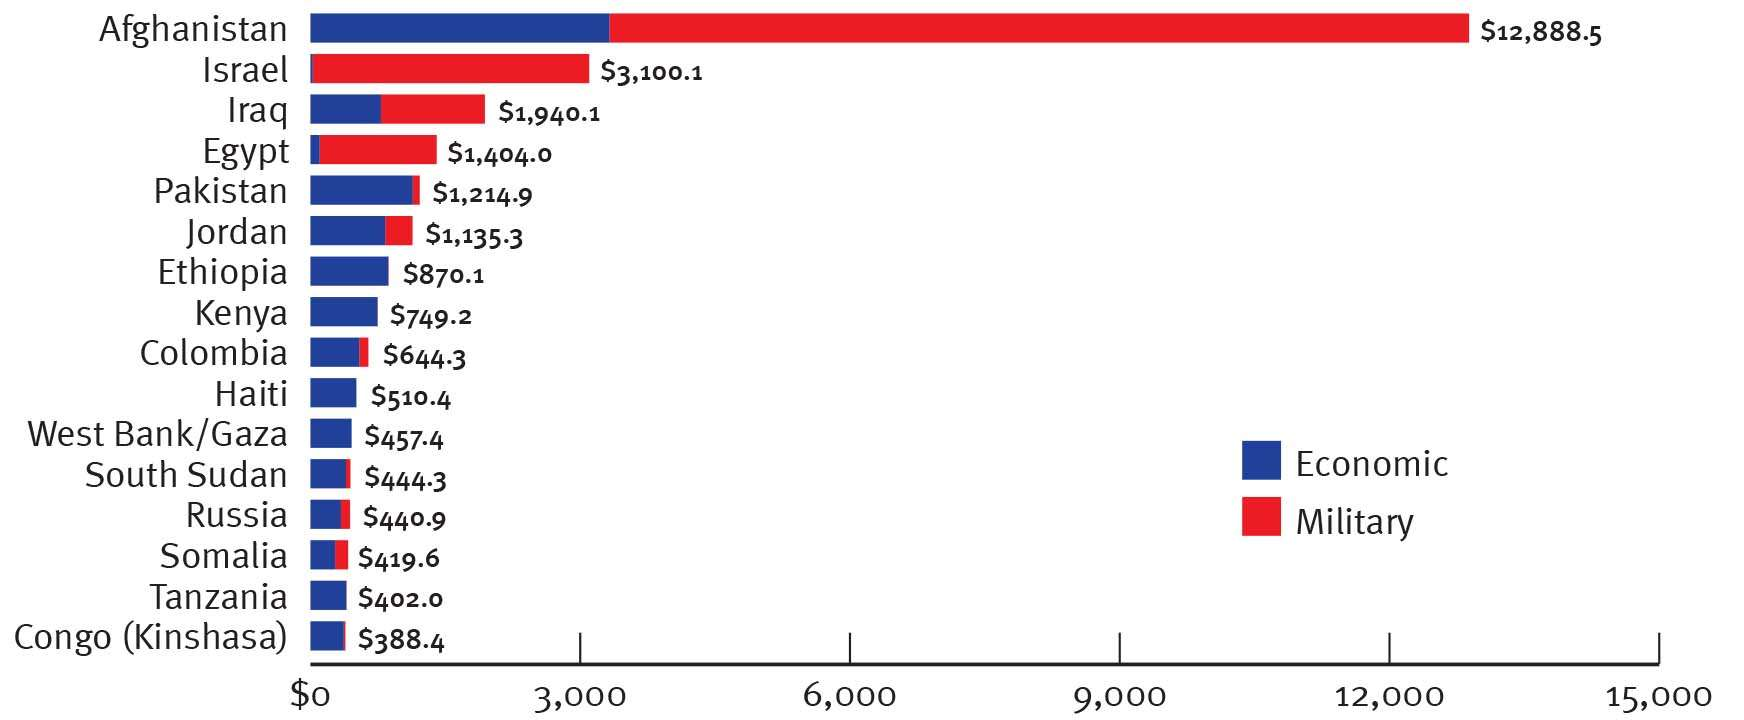 Top recipients of U.S. foreign aid, 2012.